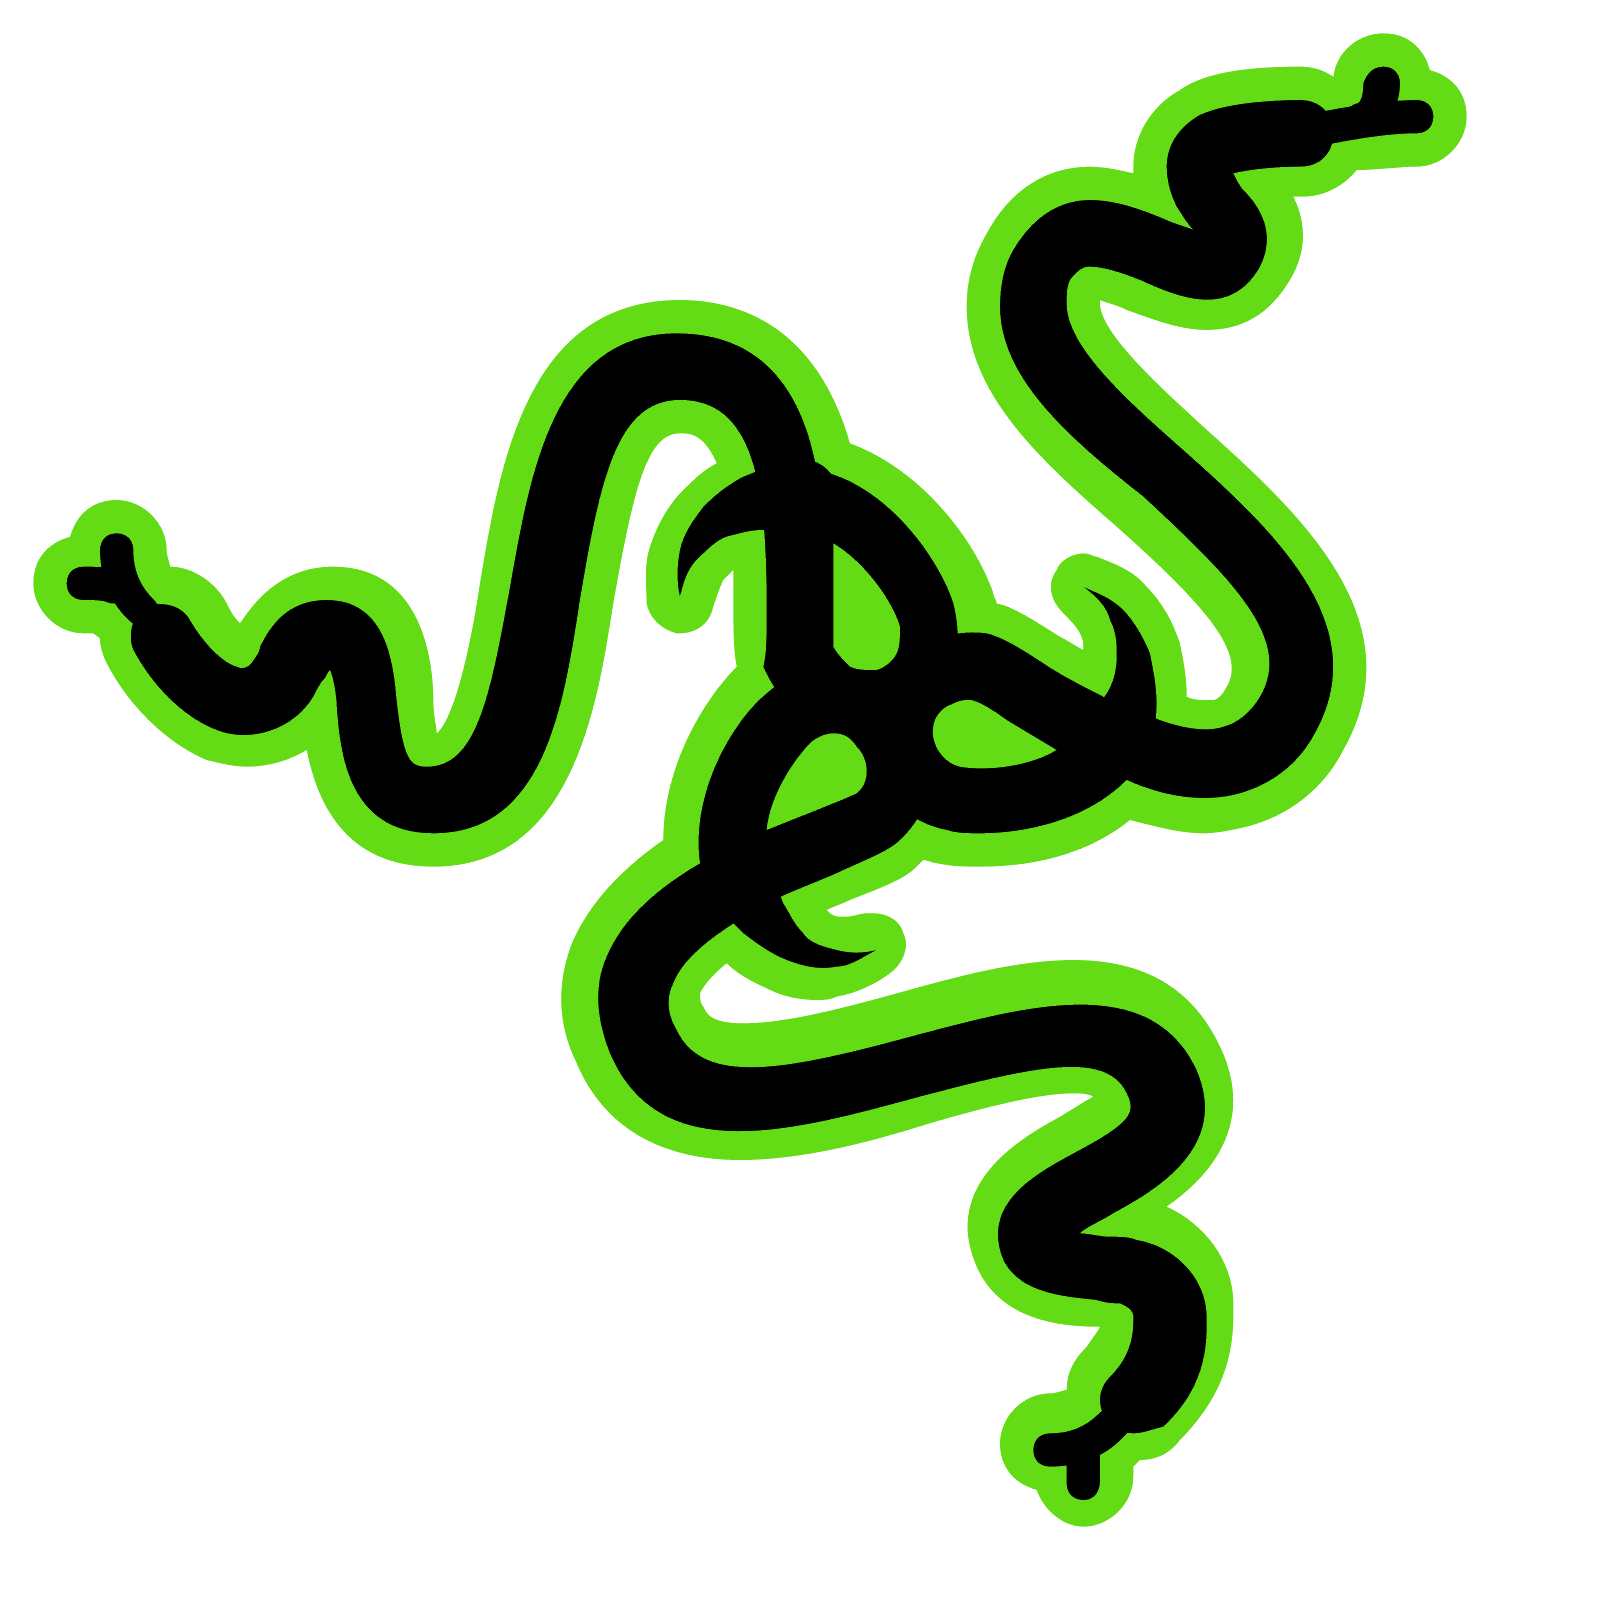 Razer logo png. Icon free download and